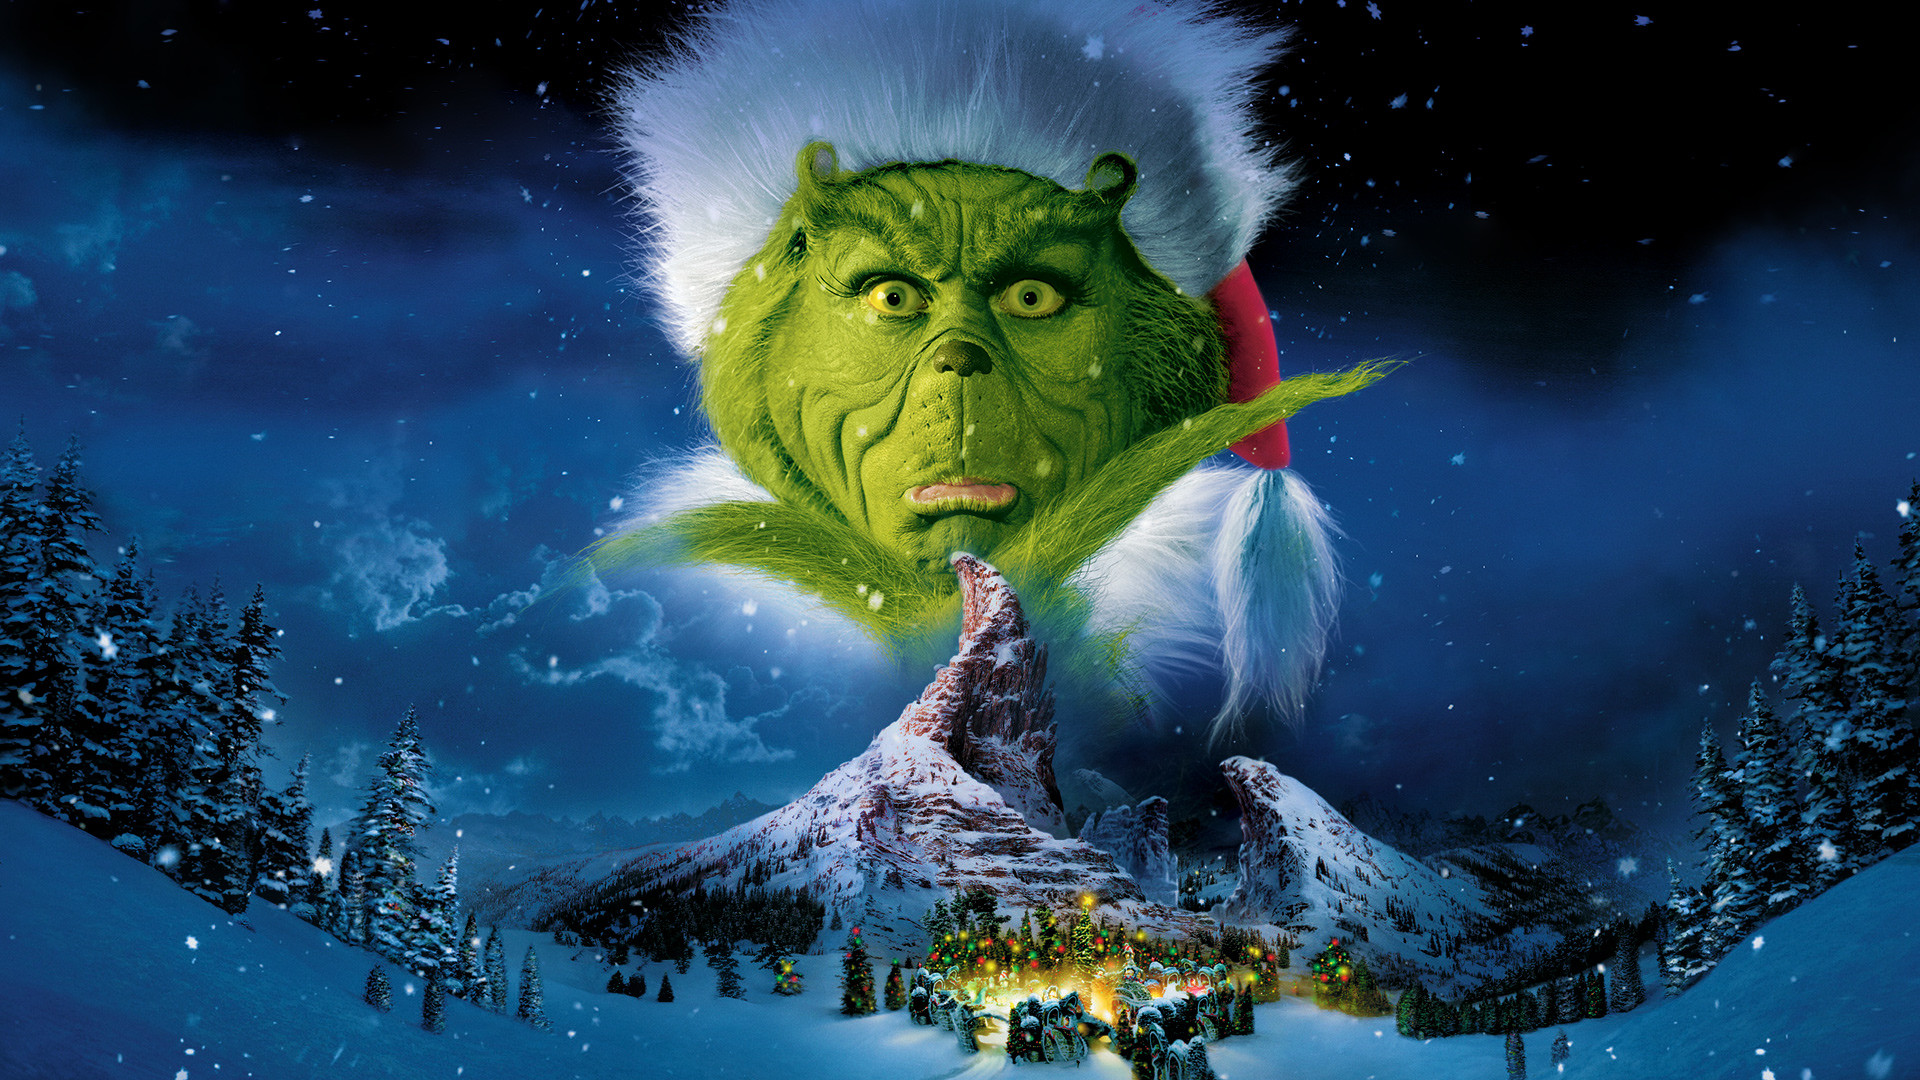 How The Grinch Stole Christmas Image Data Src Grinch   Grinch 1920x1080